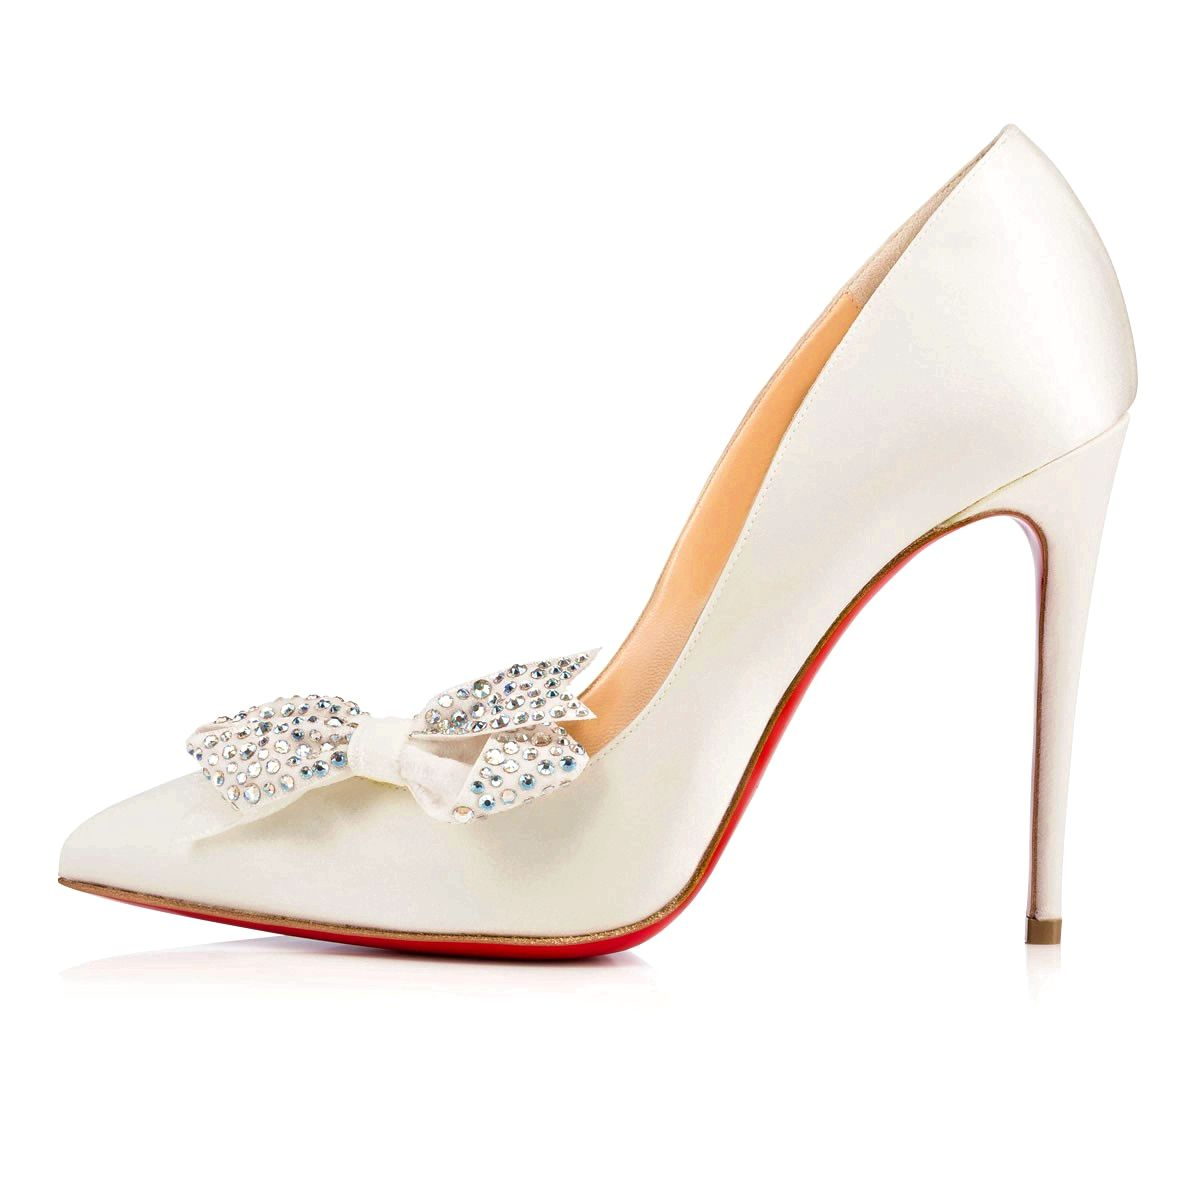 5d90c6170ba3 Shoes - Madame Menule - Christian Louboutin hunting for limited offer